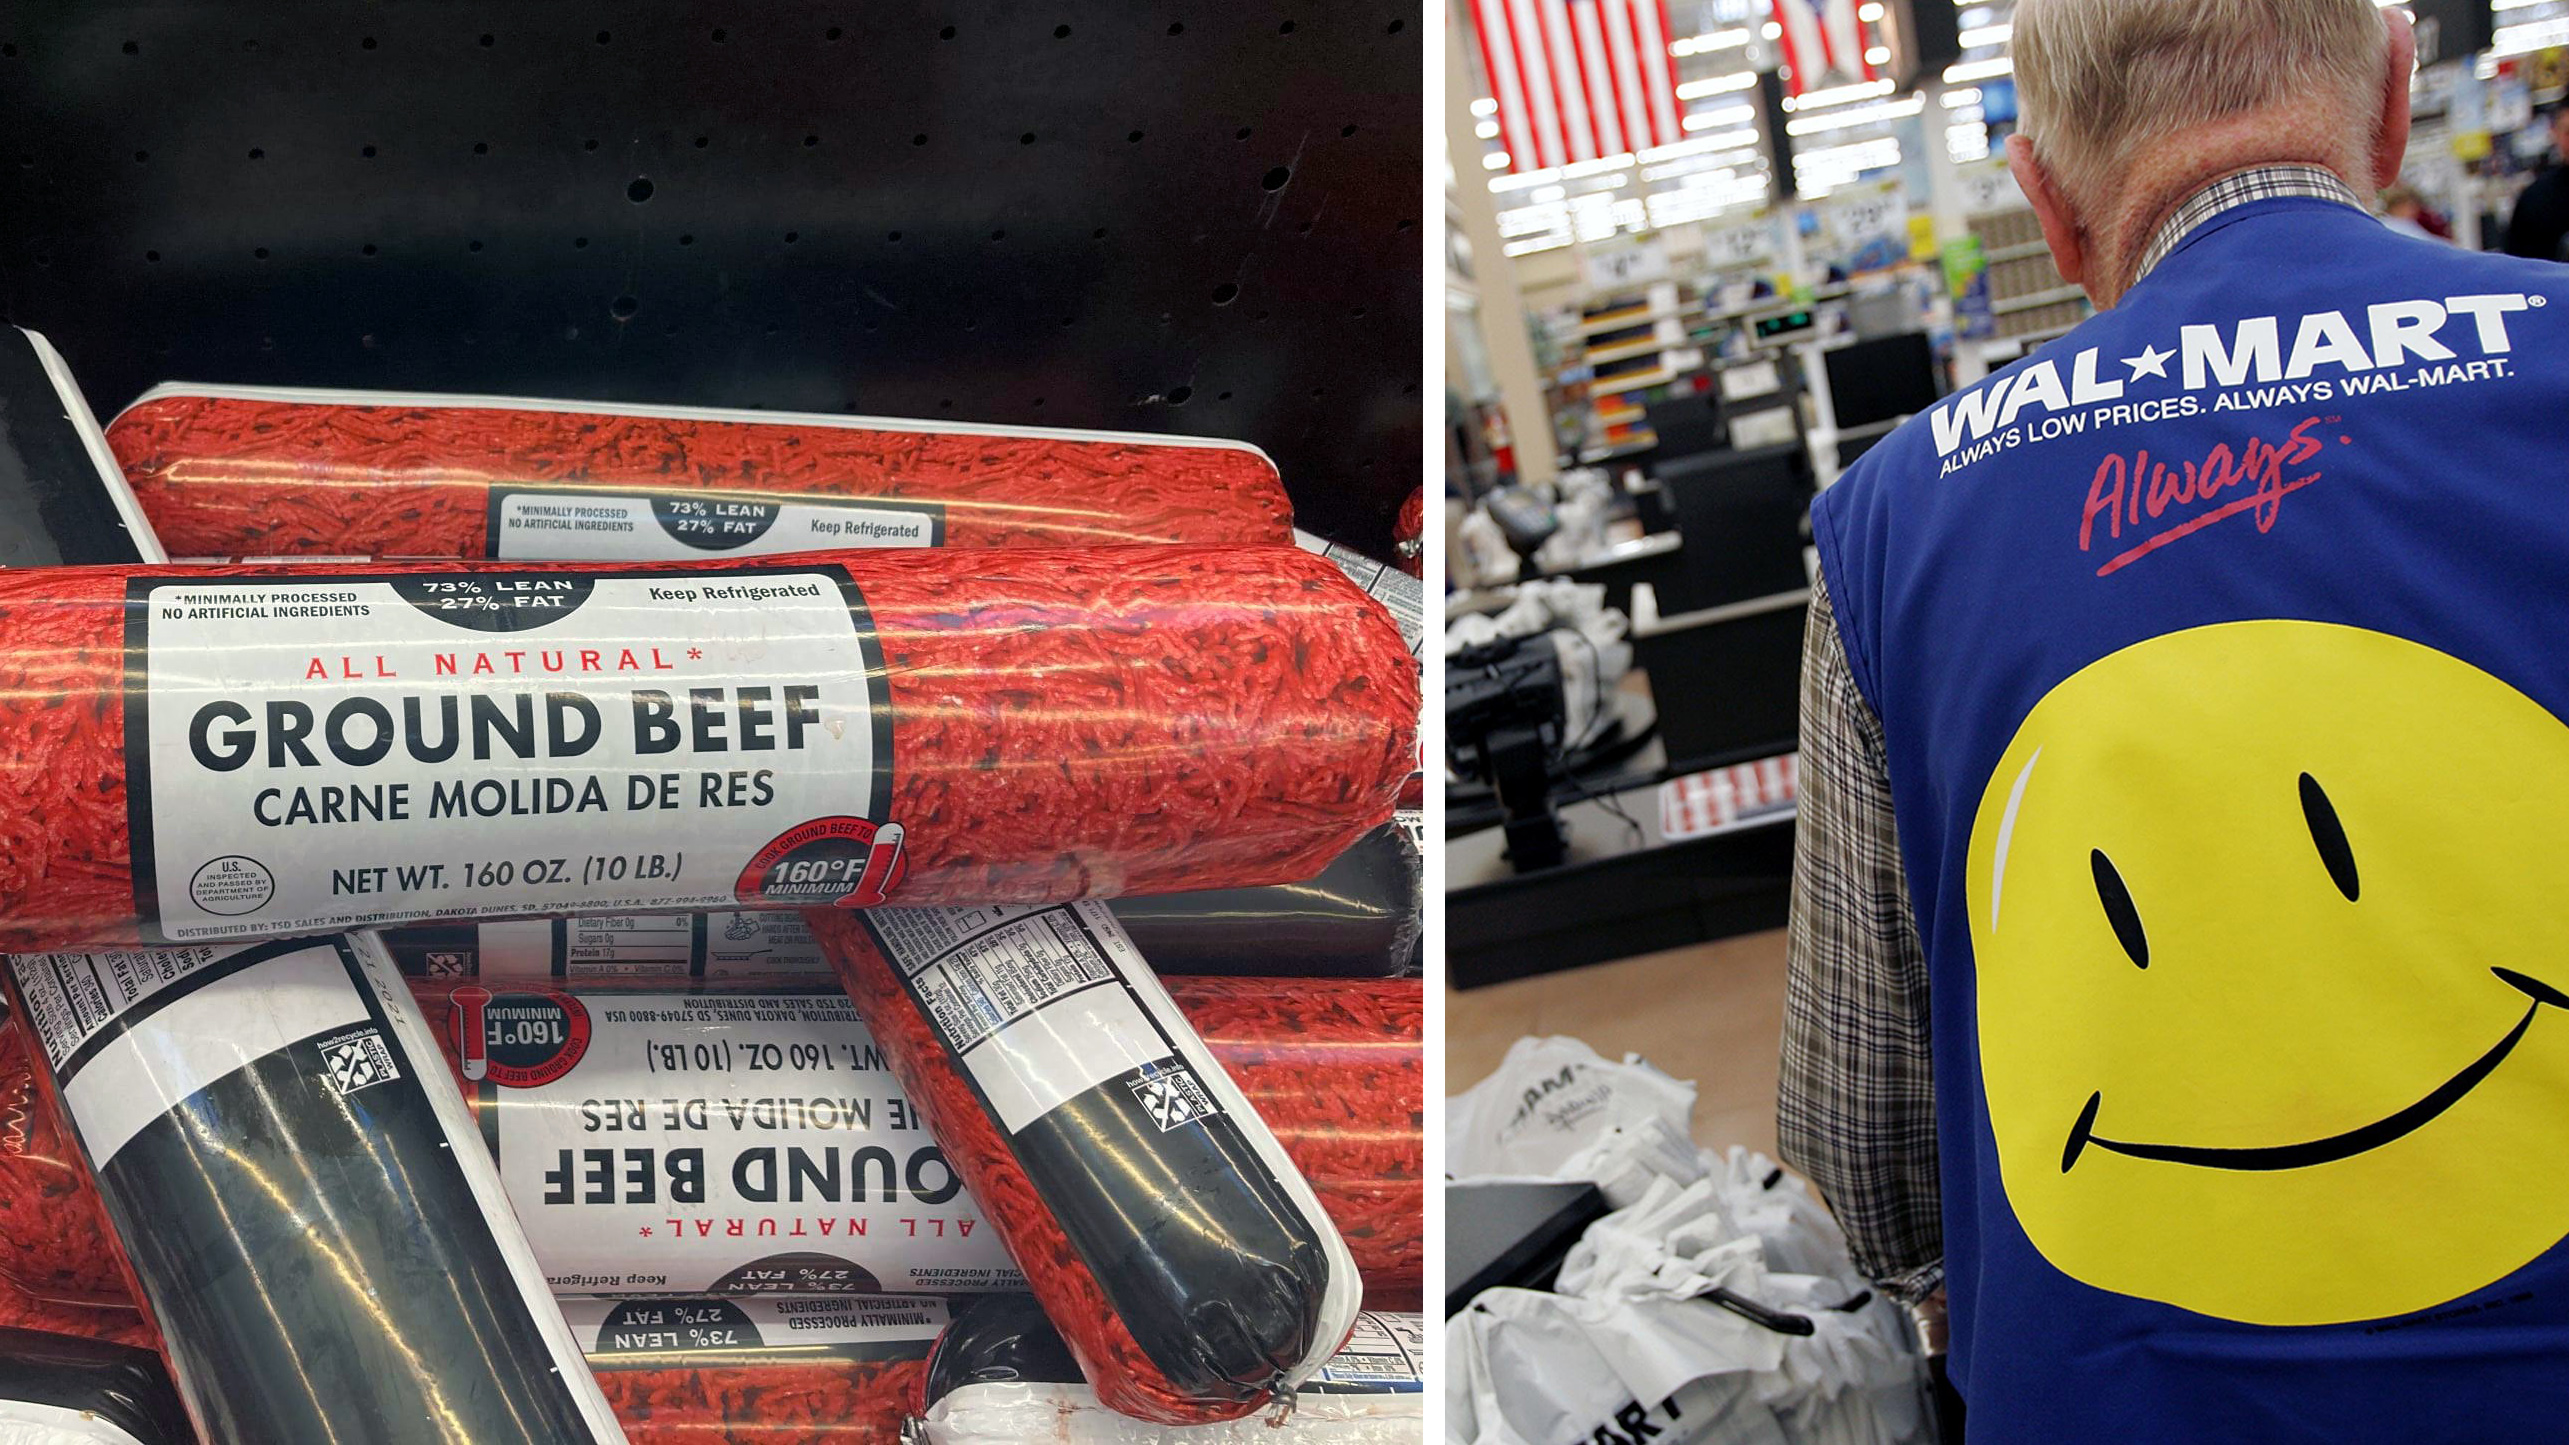 Walmart beef: Fight in store leads to Ohio woman's assault with 'log of prepackaged meat'